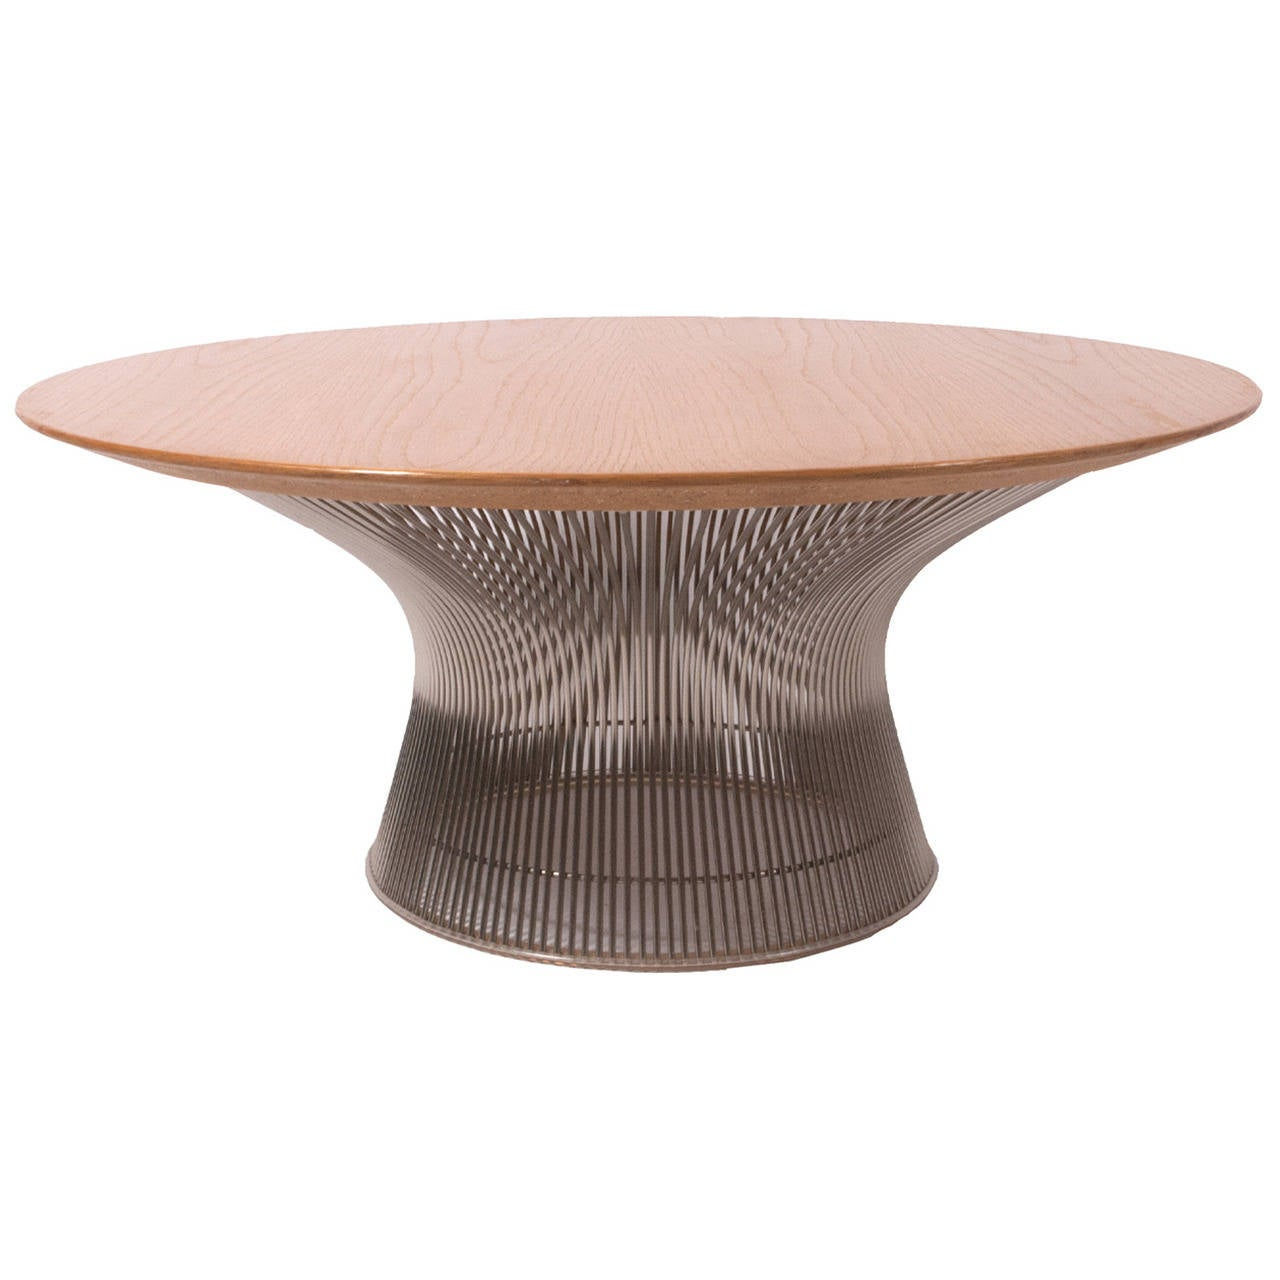 Coffee table by warren platner at 1stdibs for Warren platner coffee table